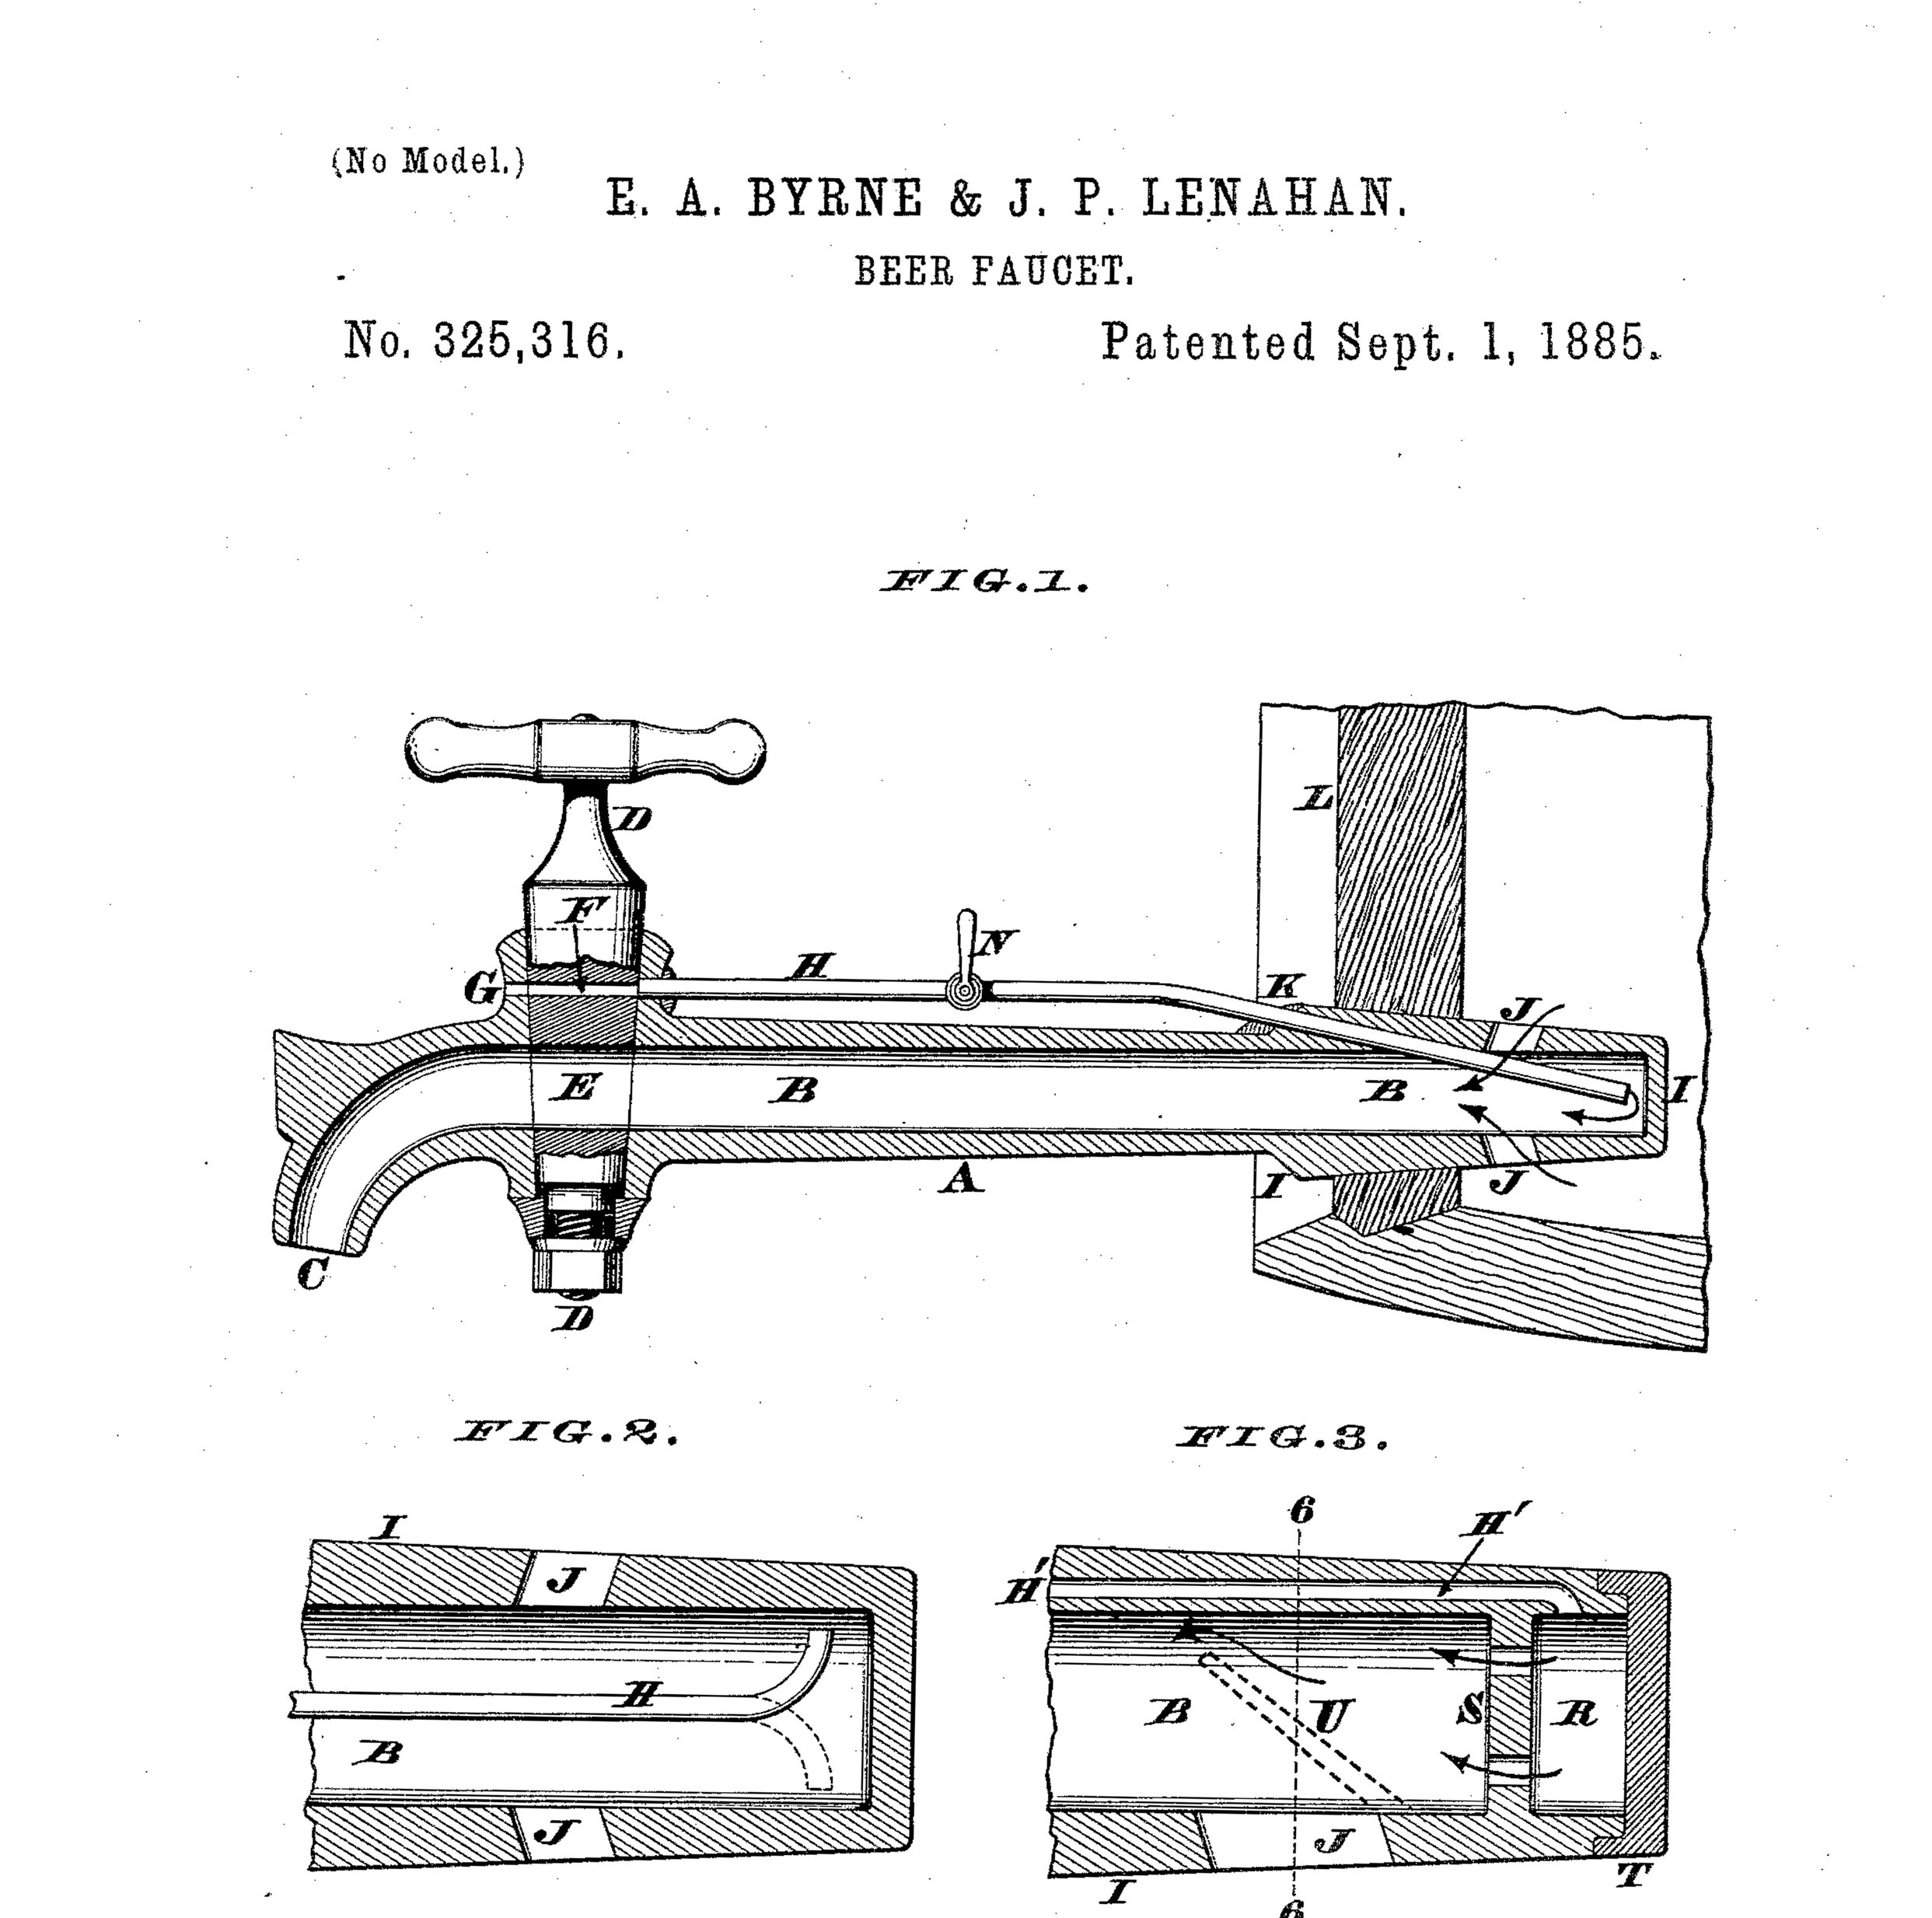 Patent Prints - Antique Patents from Beer, Wine, Liquor, Firearms, Automotive, and More!